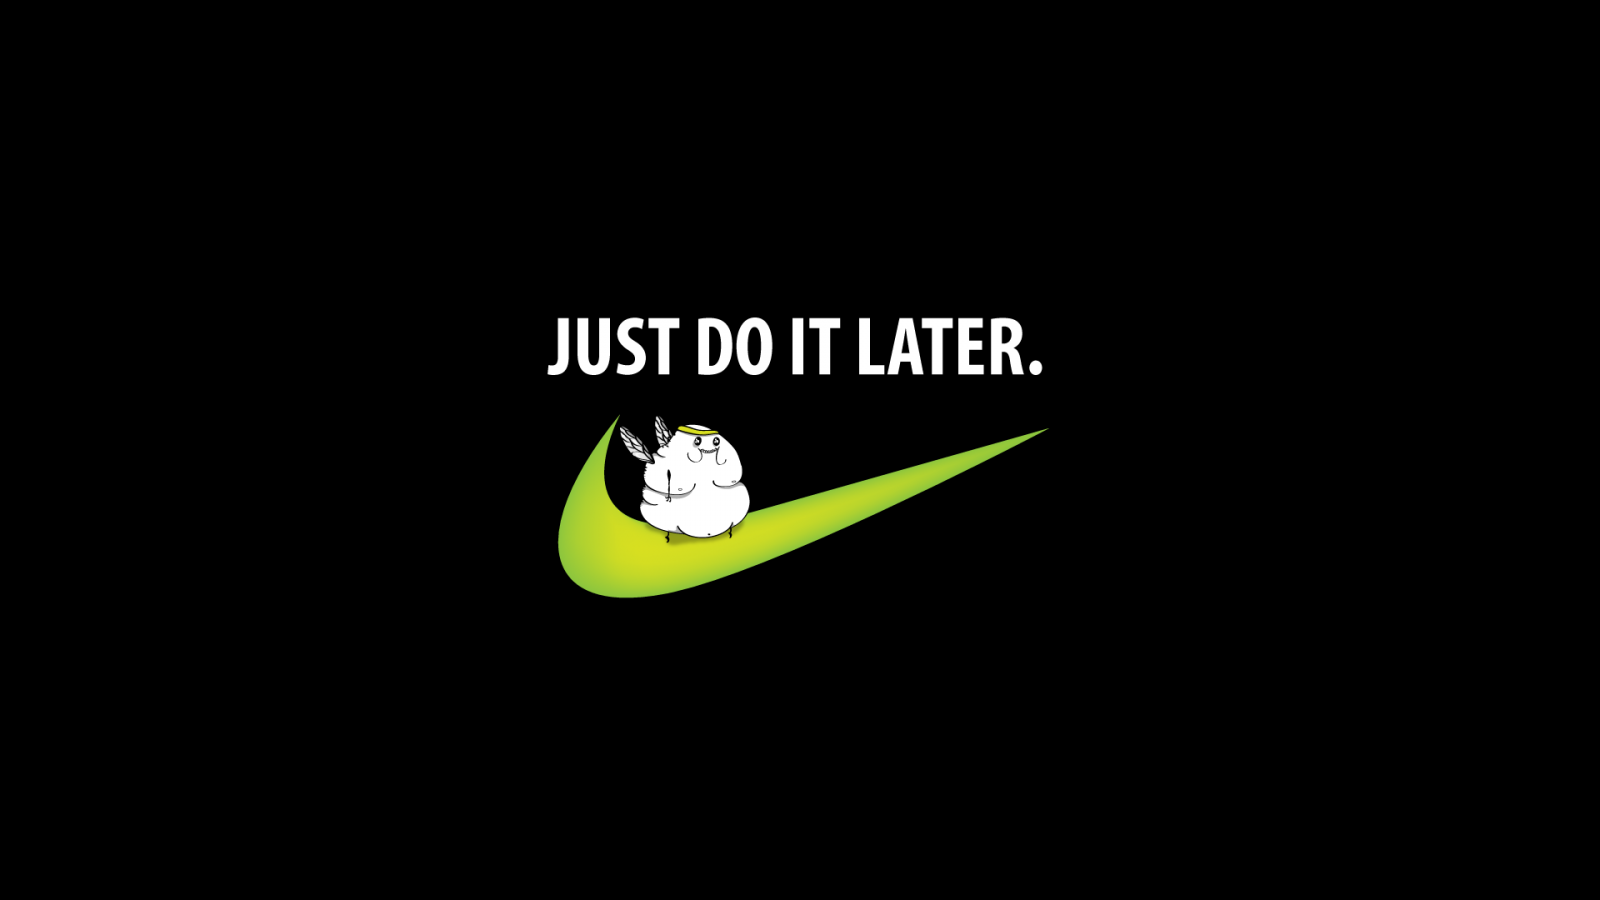 Free Download Nike Motivational Quotes Wallpaper Just Do It Later